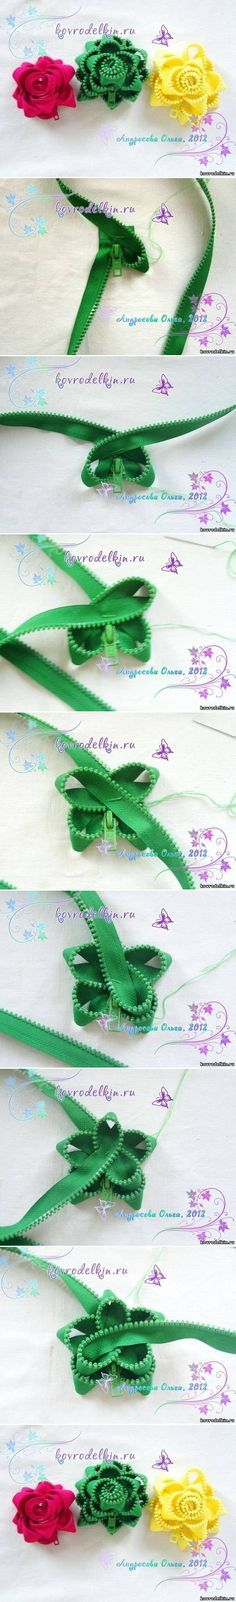 DIY simple cremallera broche de la flor DIY Proyectos | UsefulDIY.com